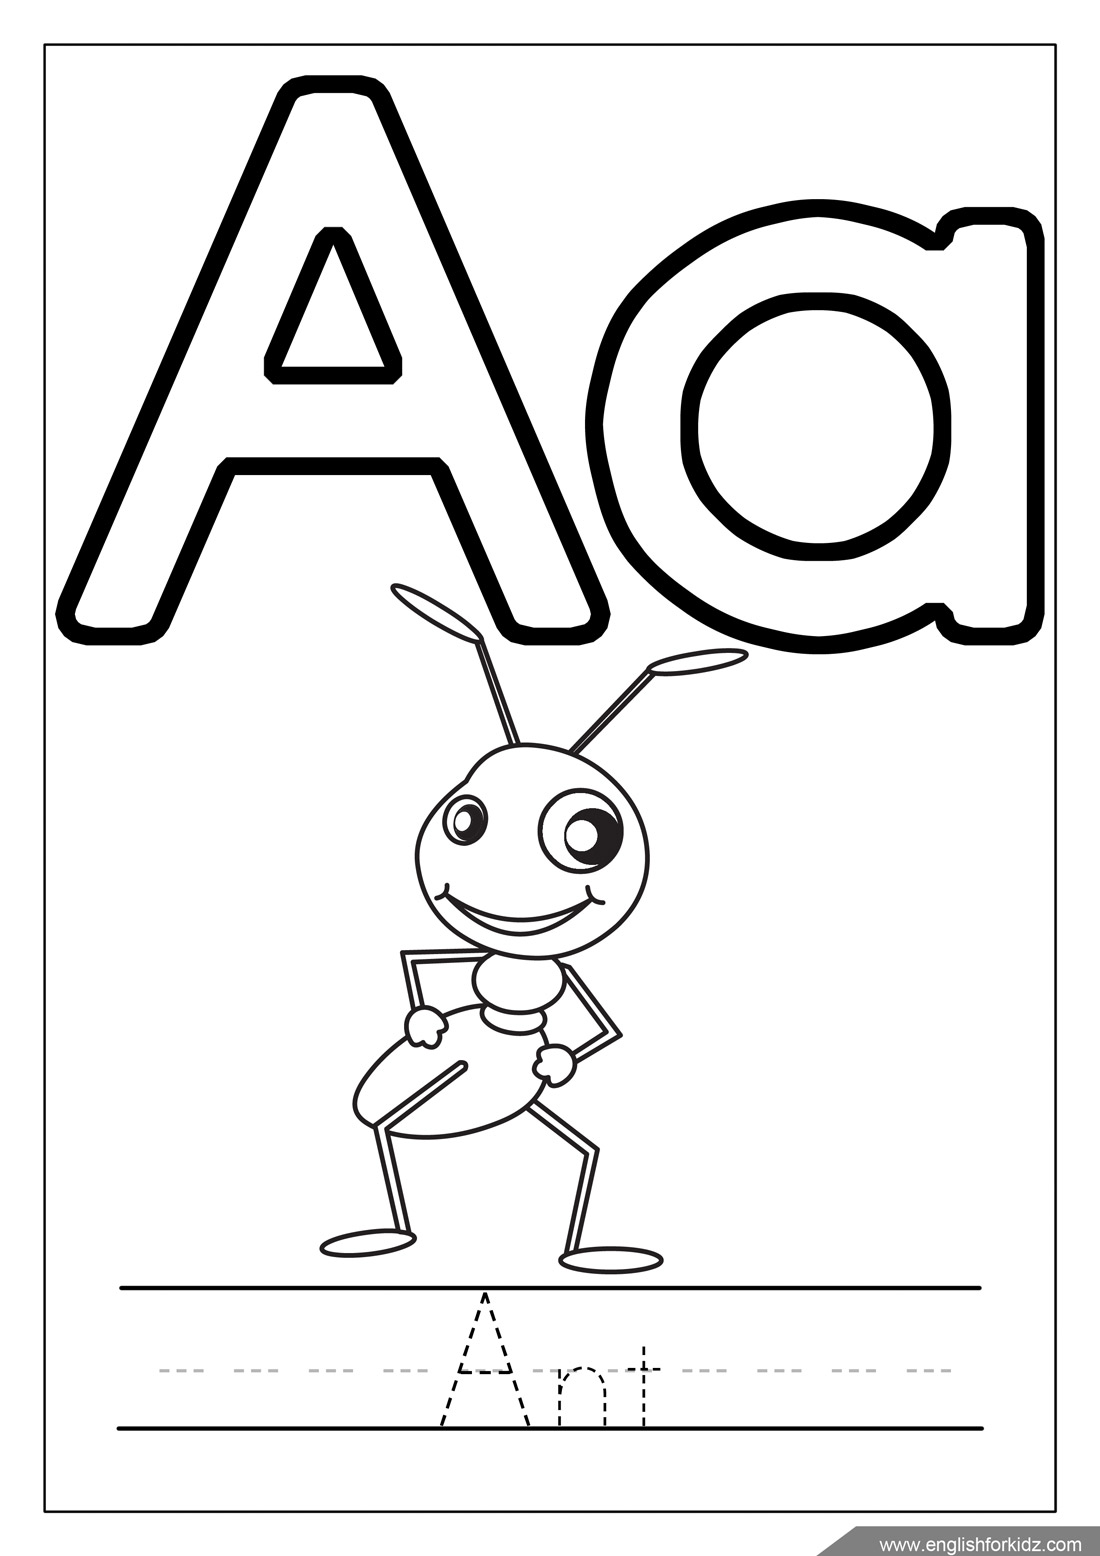 coloring picture of letter a preschool alphabet coloring pages free numbers pokemon picture letter a of coloring